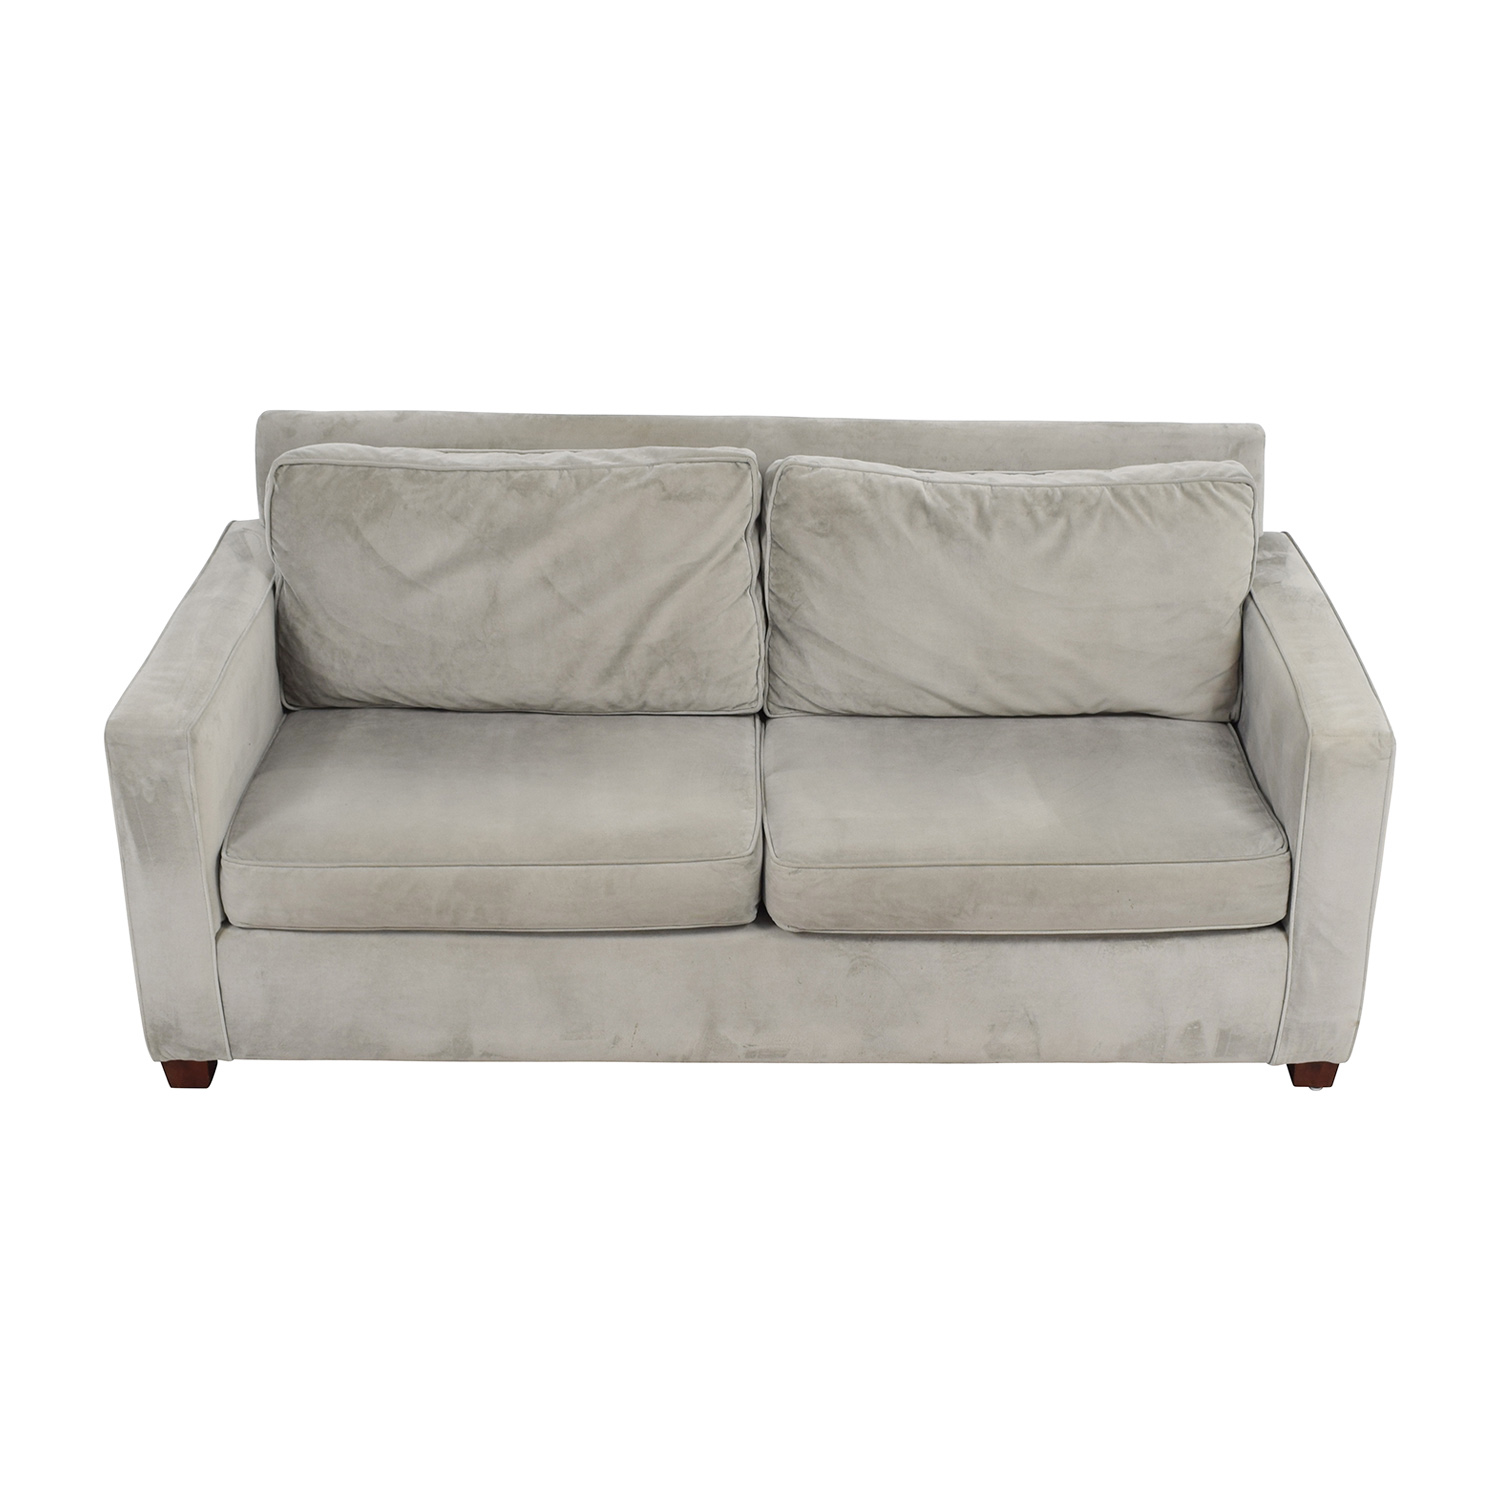 West Elm West Elm Henry Grey Couch used